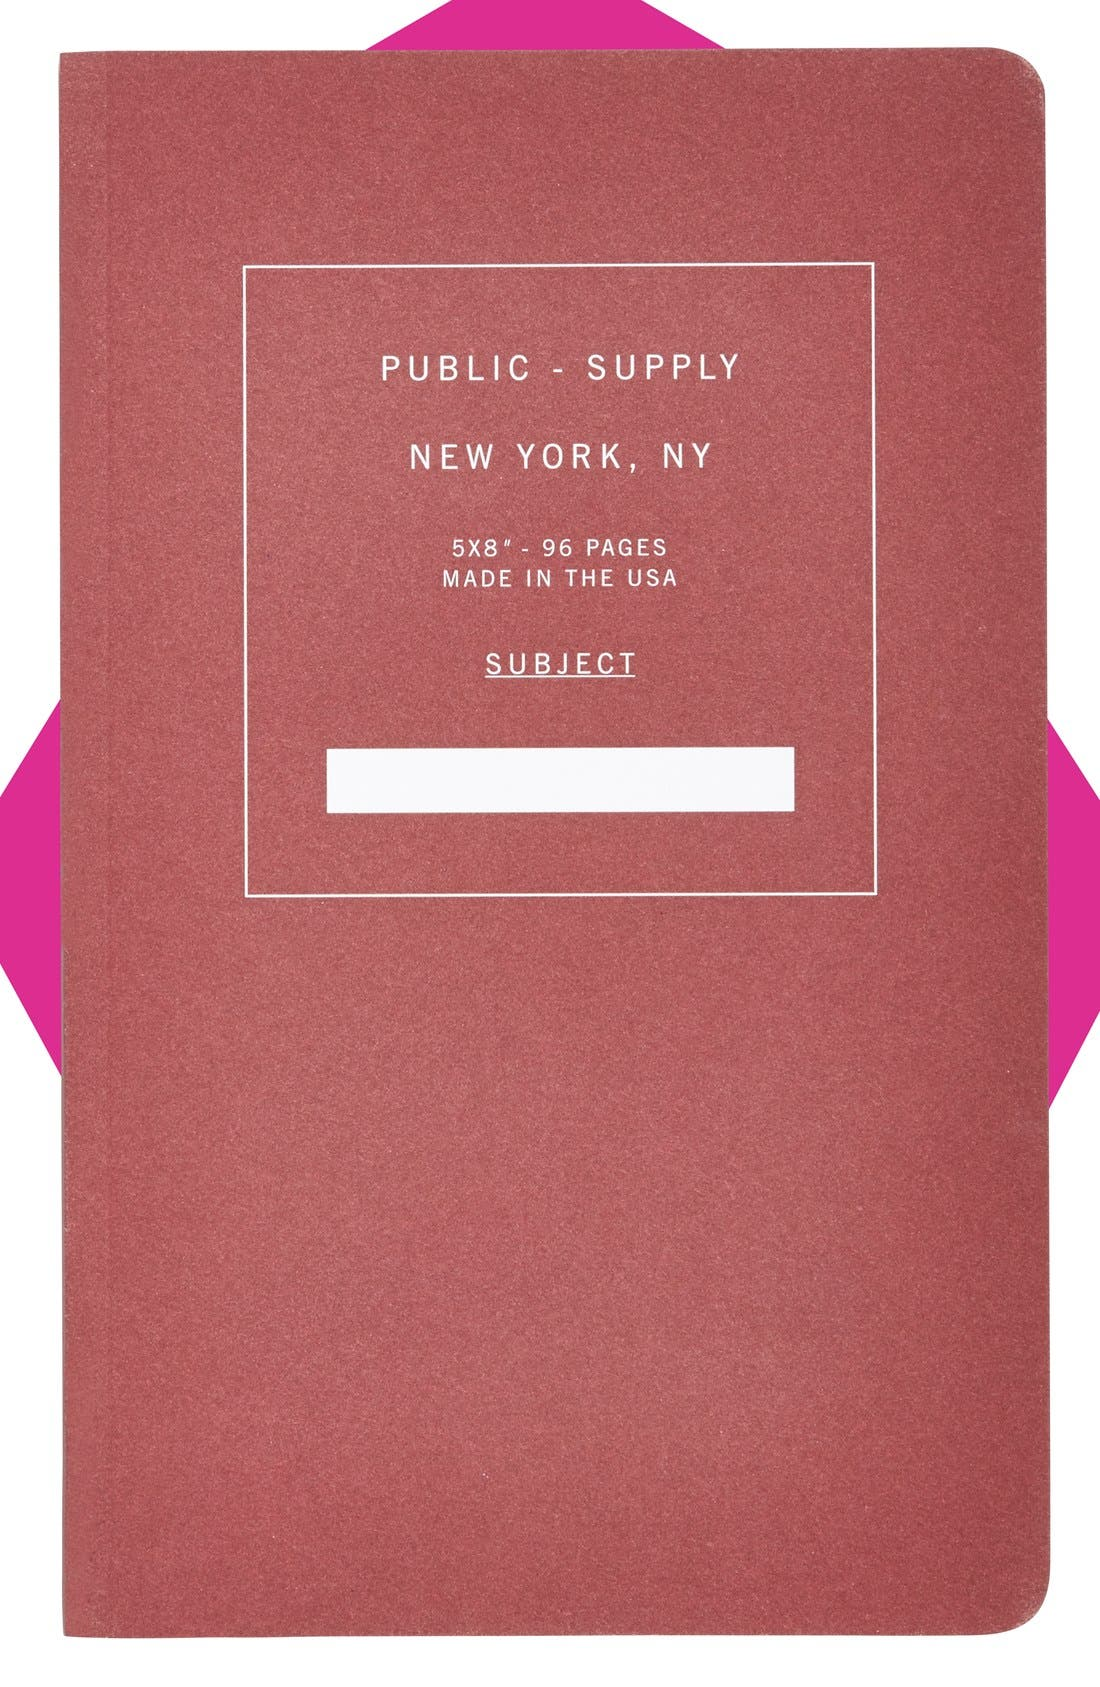 Alternate Image 1 Selected - Public - Supply Notebook